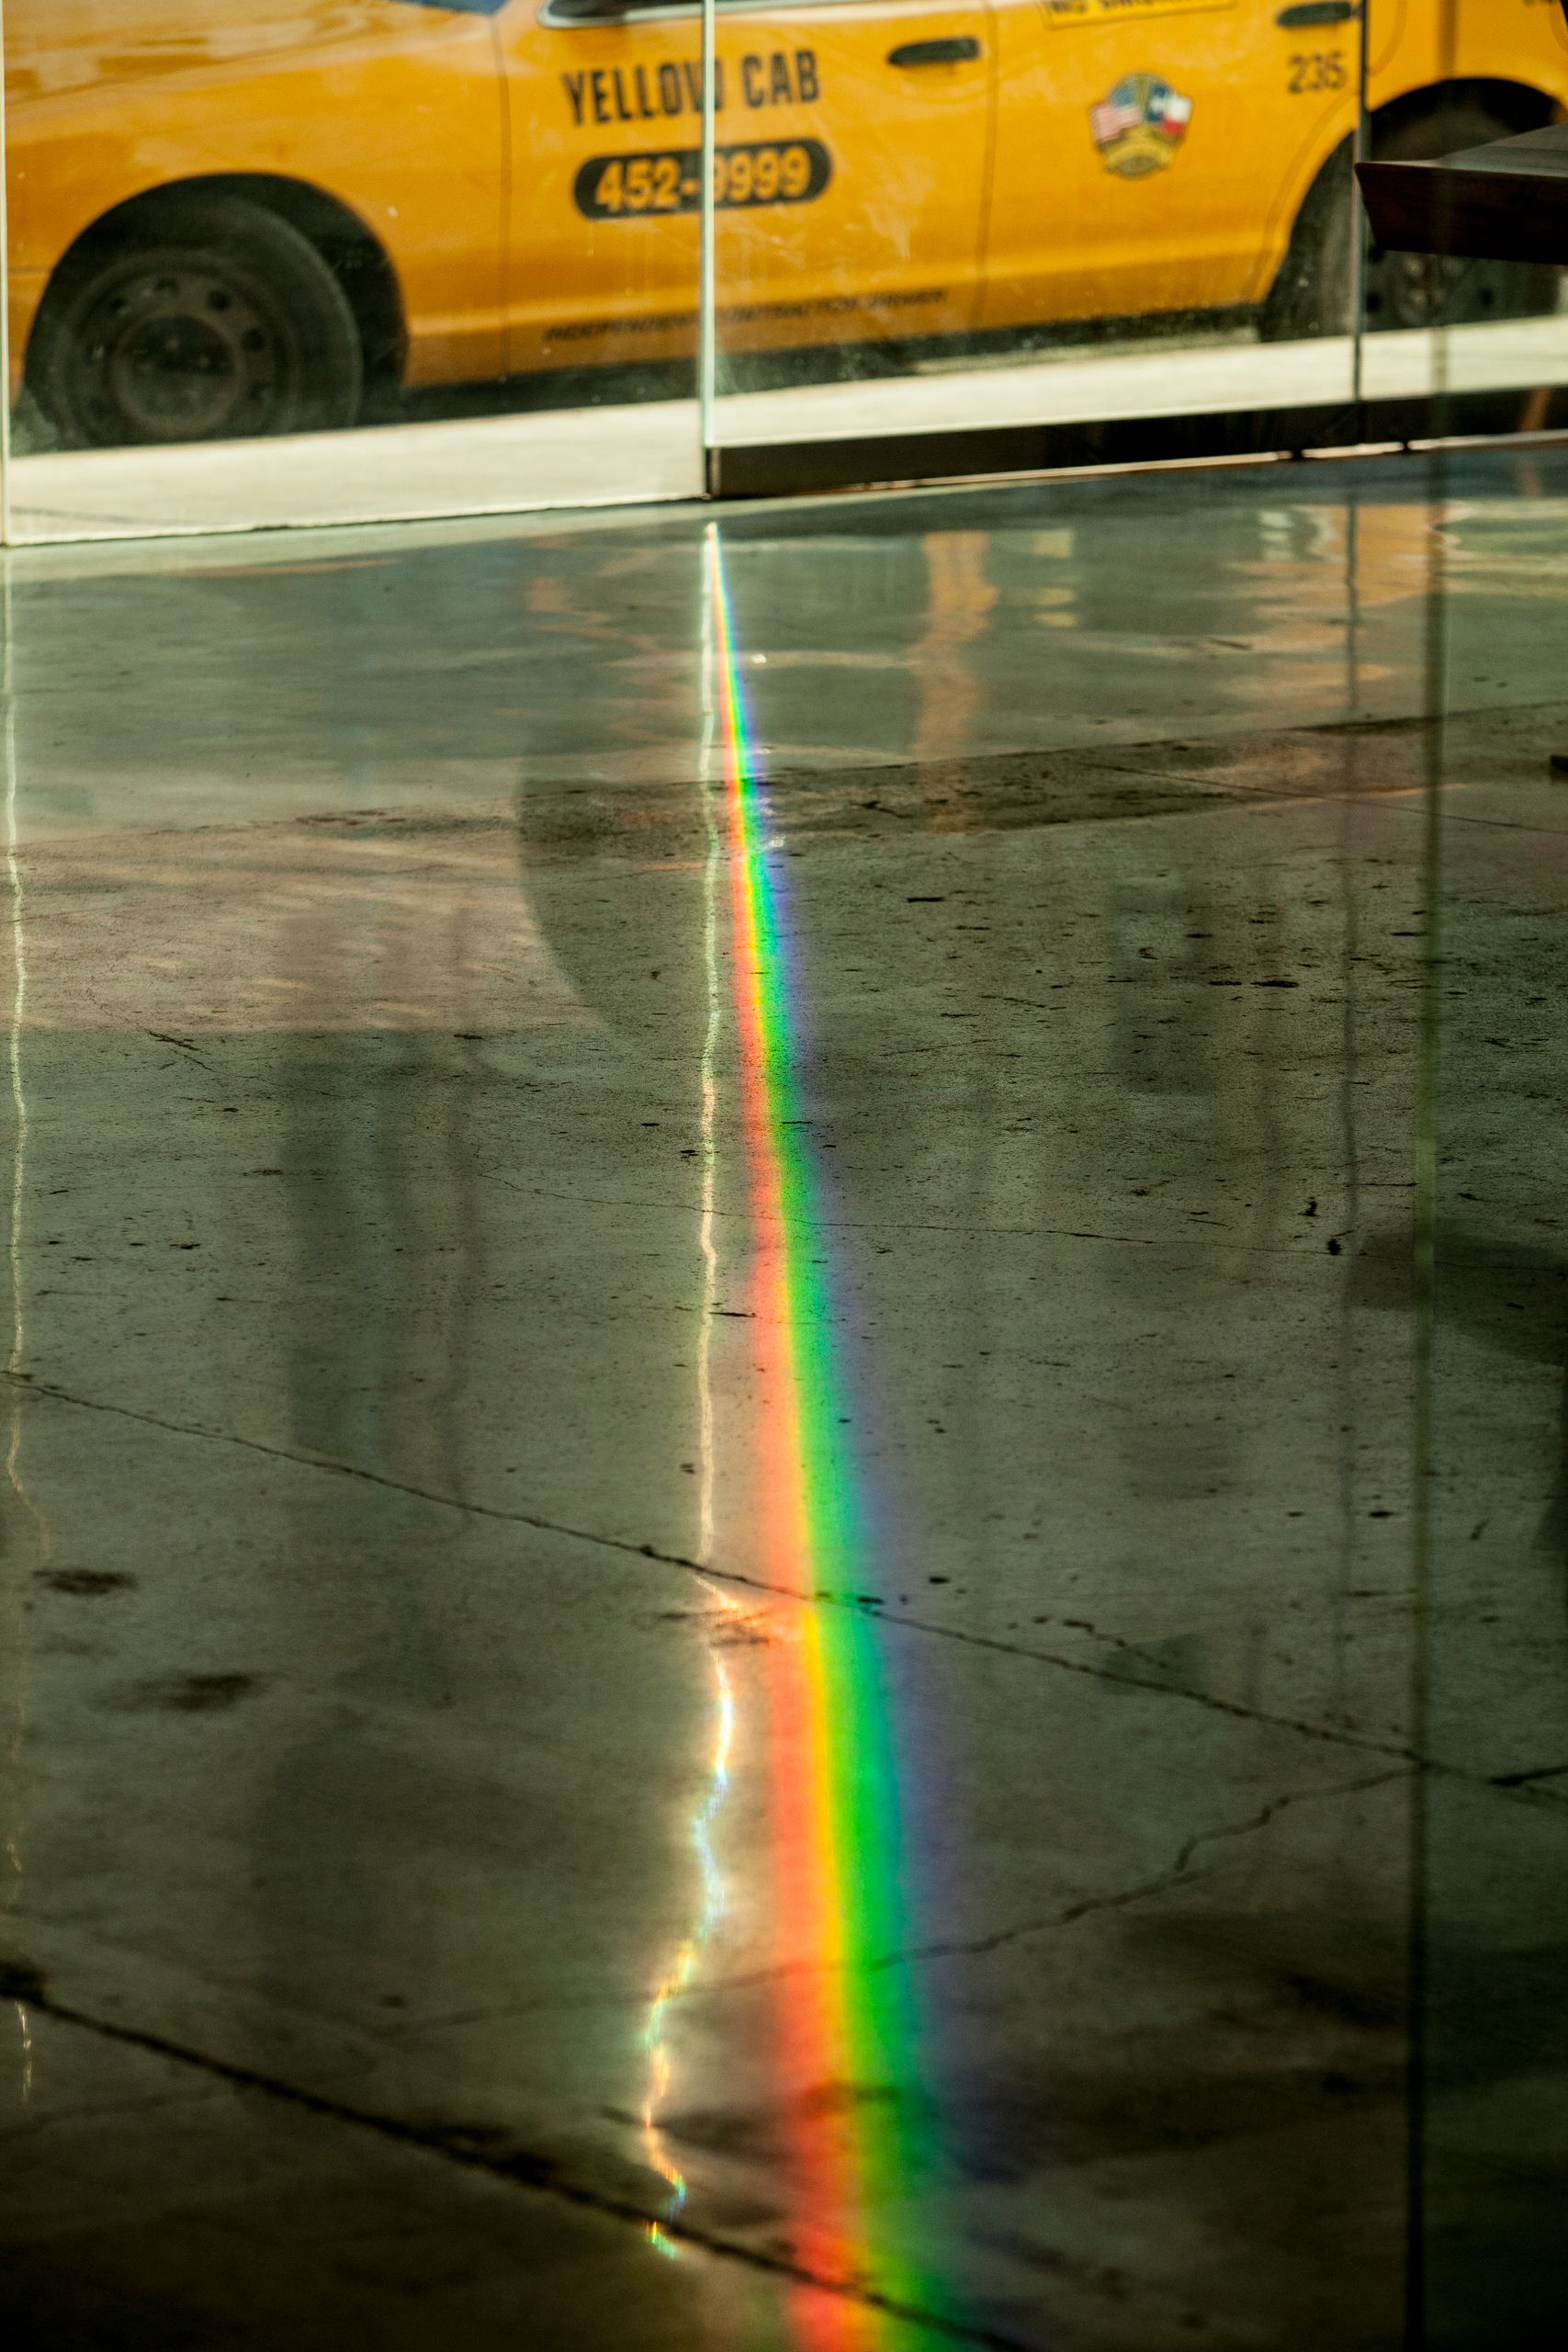 Cab and prism of light